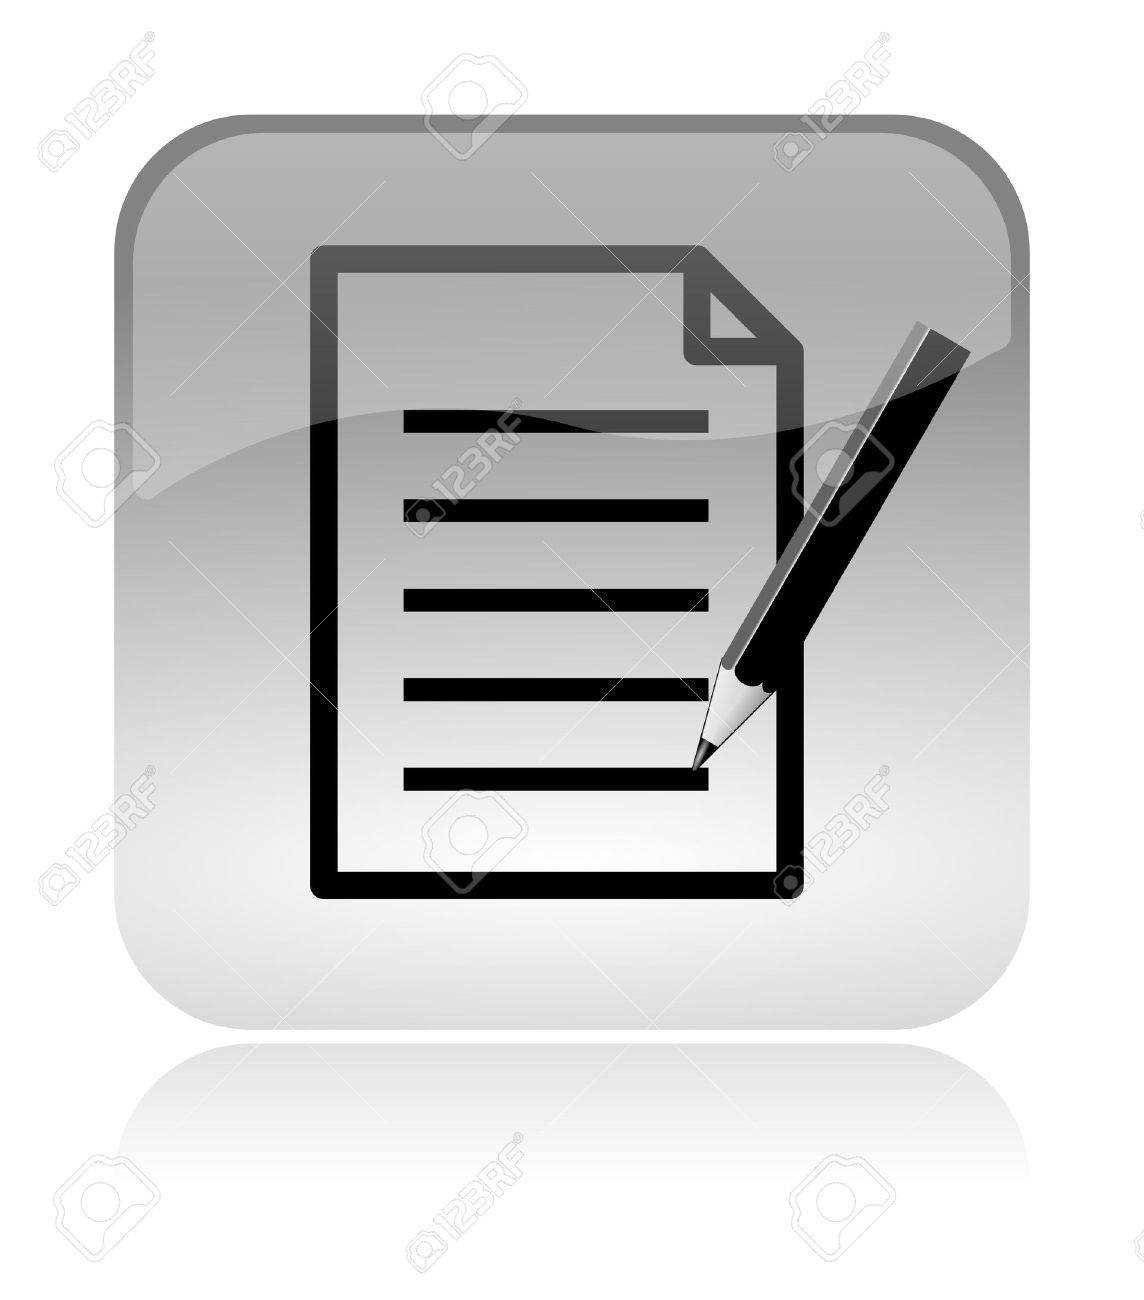 Fill form and document white, transparent and glossy web interface icon with reflection Stock Photo - 14635862